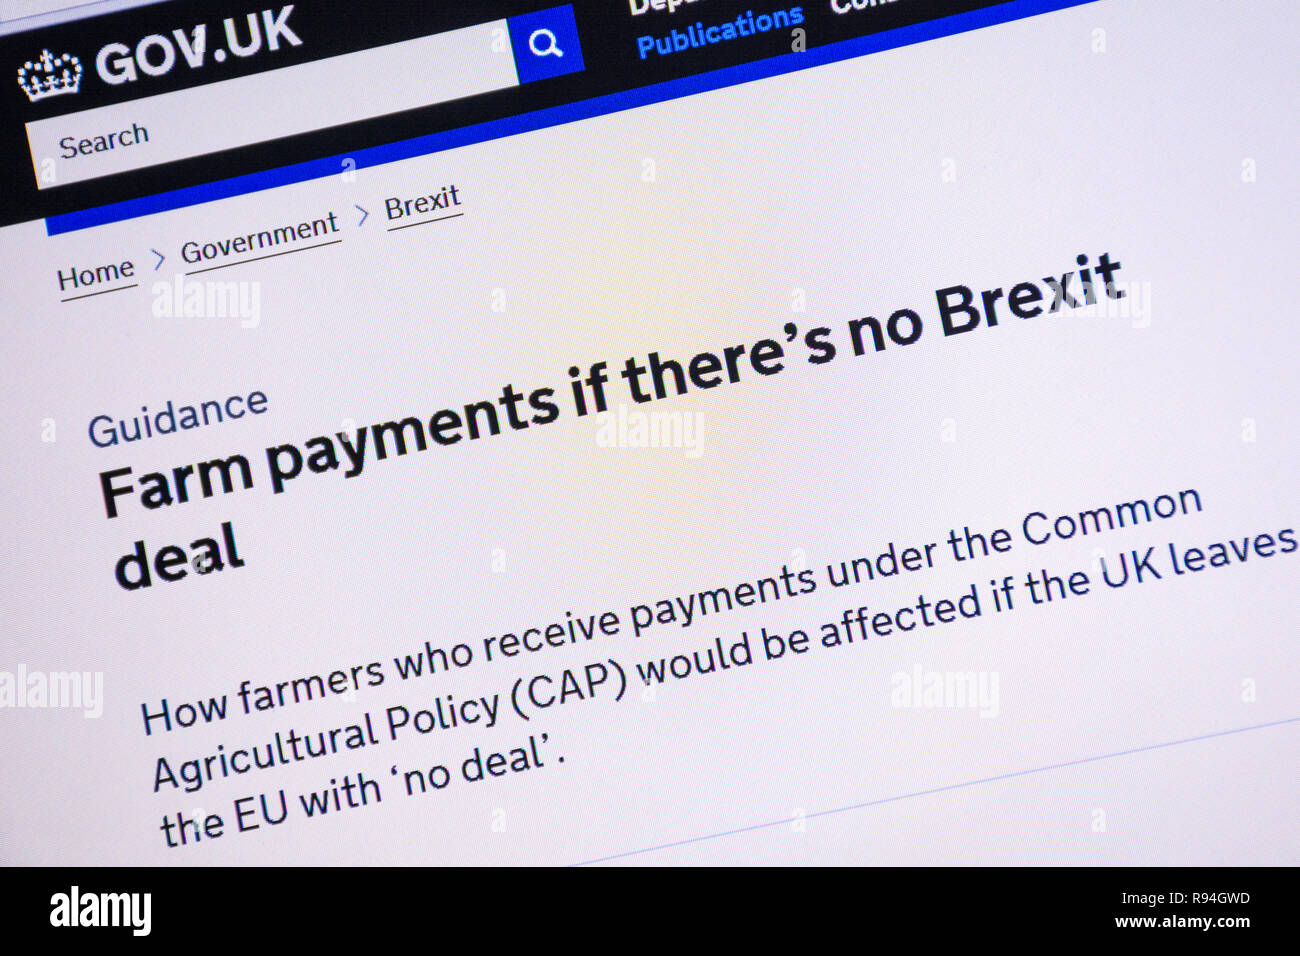 Computer screenshot of the gov.uk website showing advice and information about farm payments if there is no Brexit deal - Stock Image